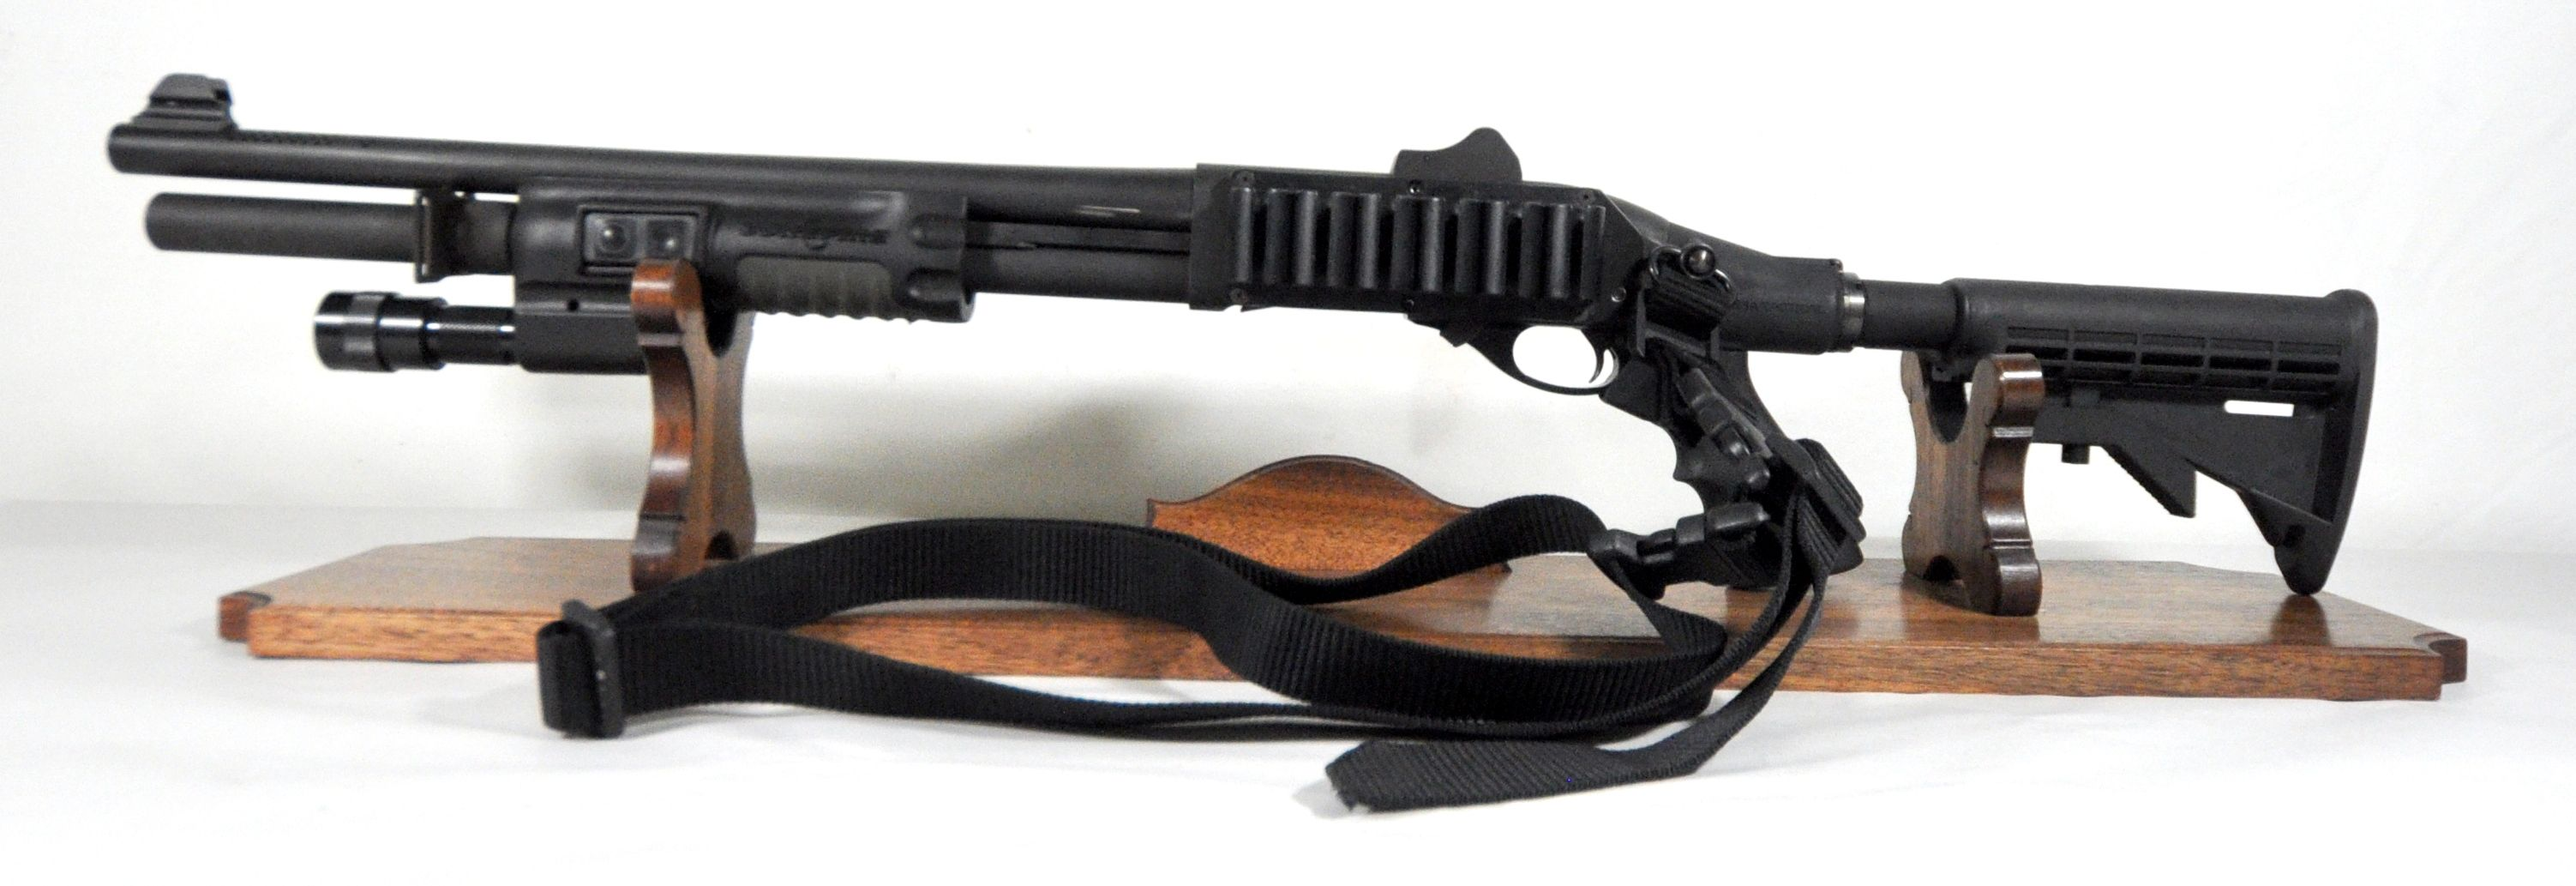 the remington 870 is a highly popular pump action shotgun this